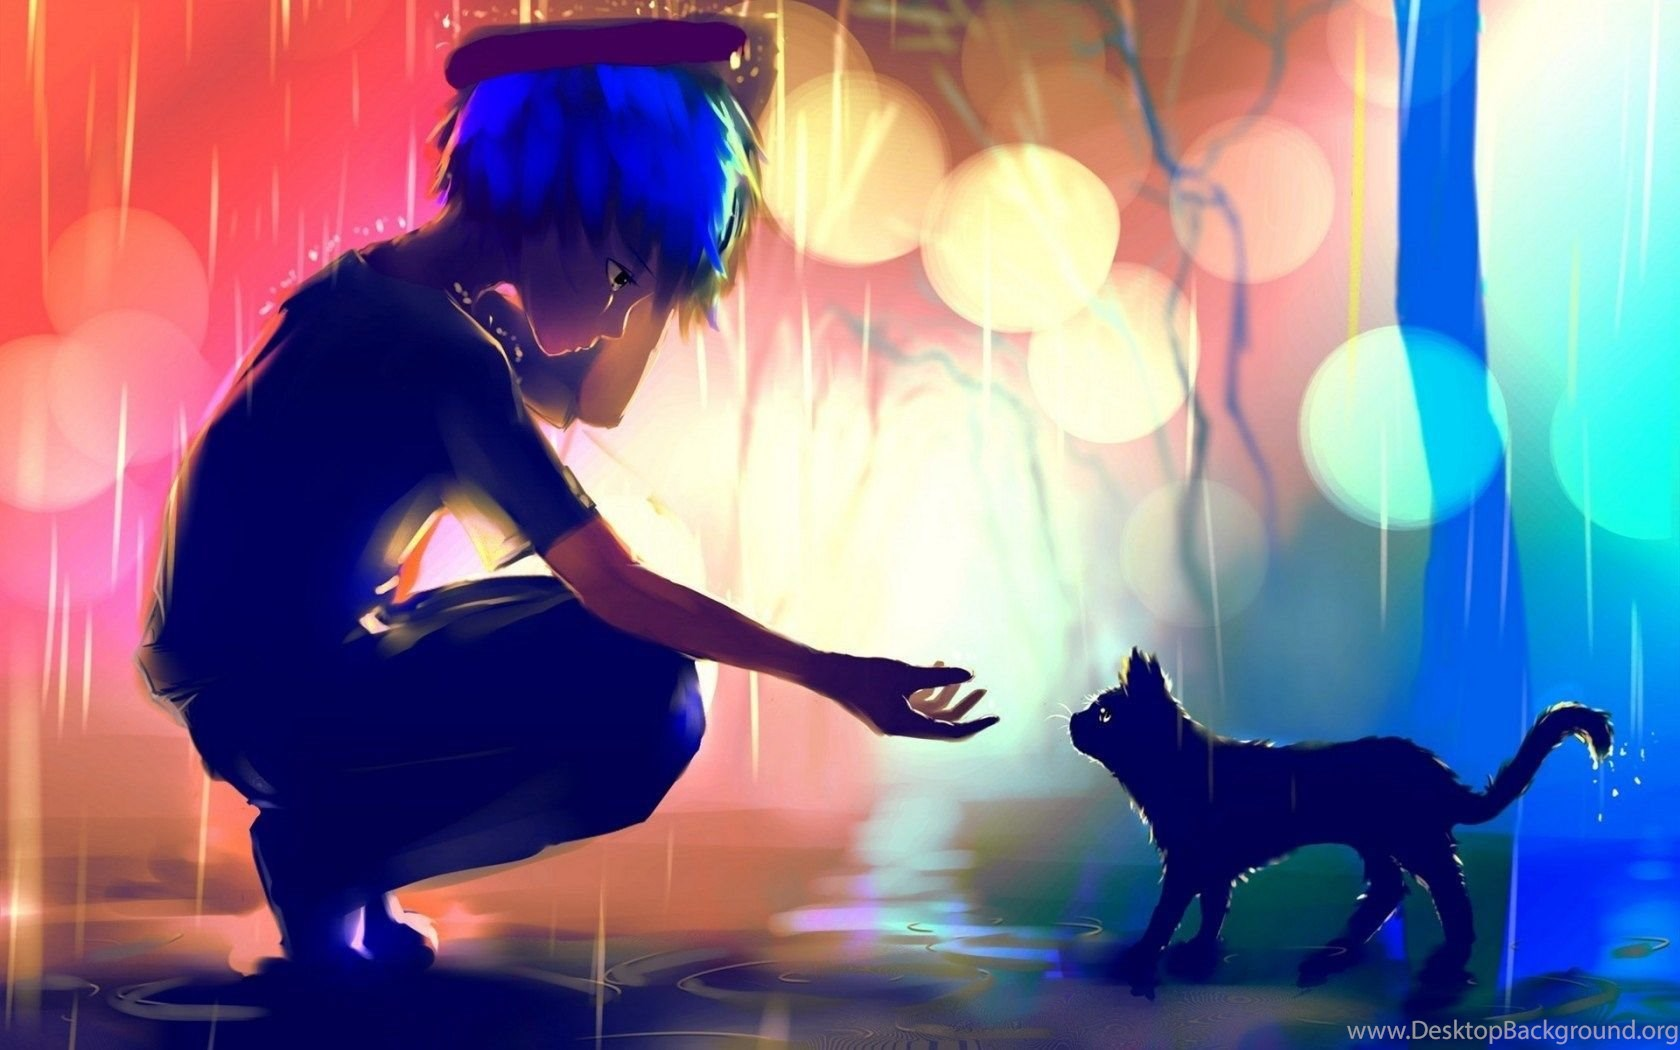 Anime Boy With Cat 3d Wallpaper Images Full Hd - Anime Sad With Cat , HD Wallpaper & Backgrounds